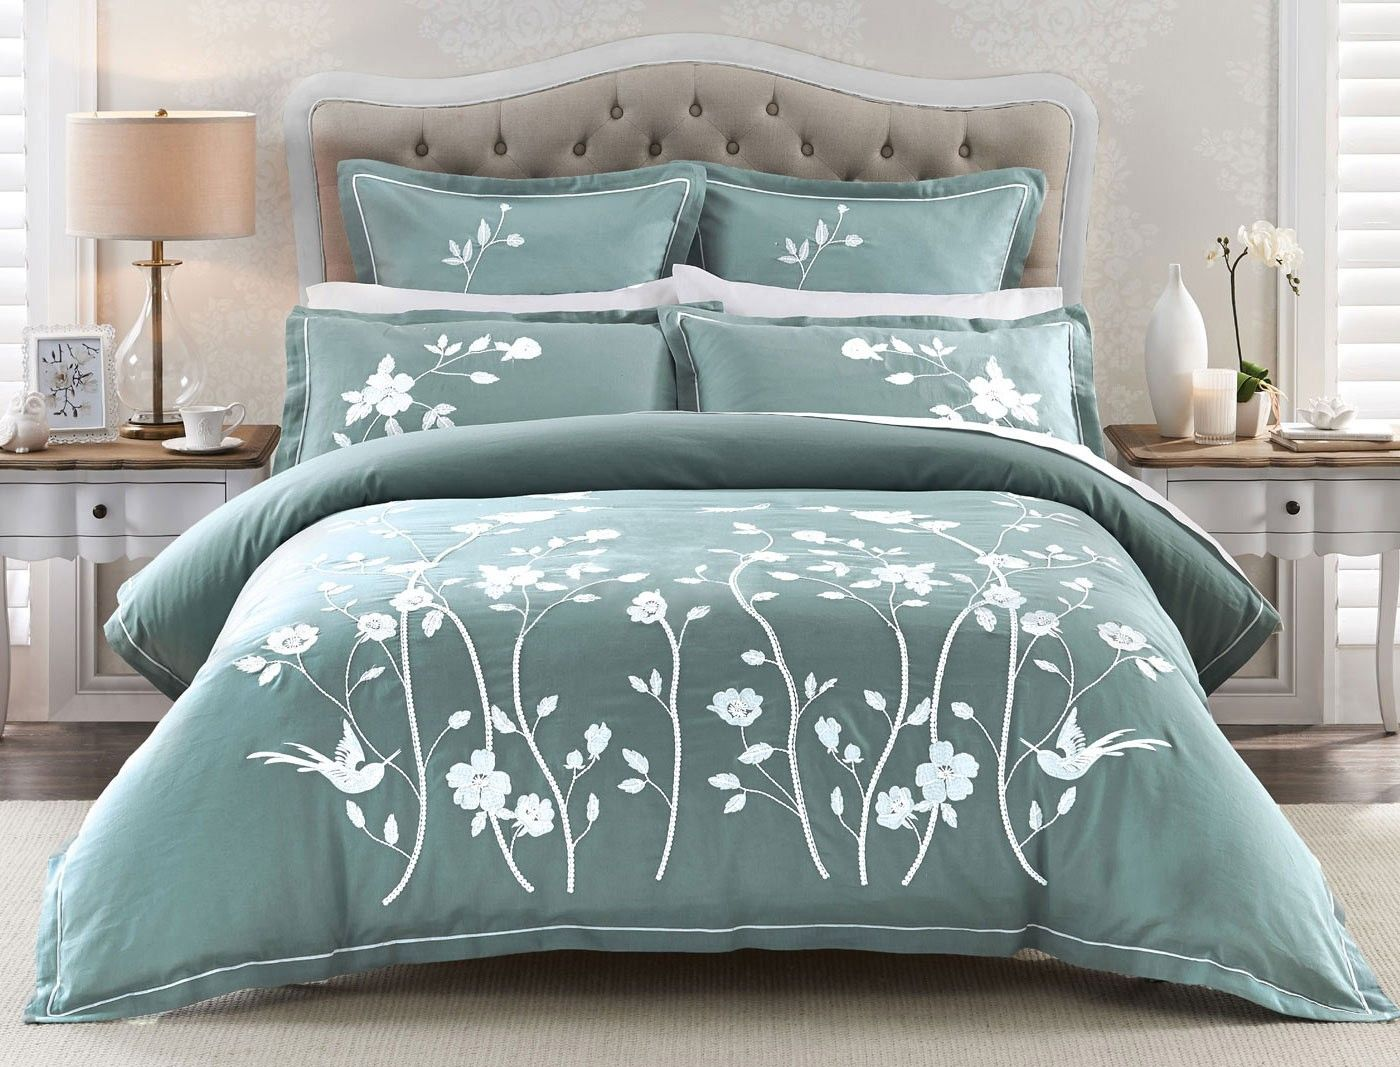 Bed Bath N\' Table | bedroom colours | Pinterest | Bedrooms and Bath